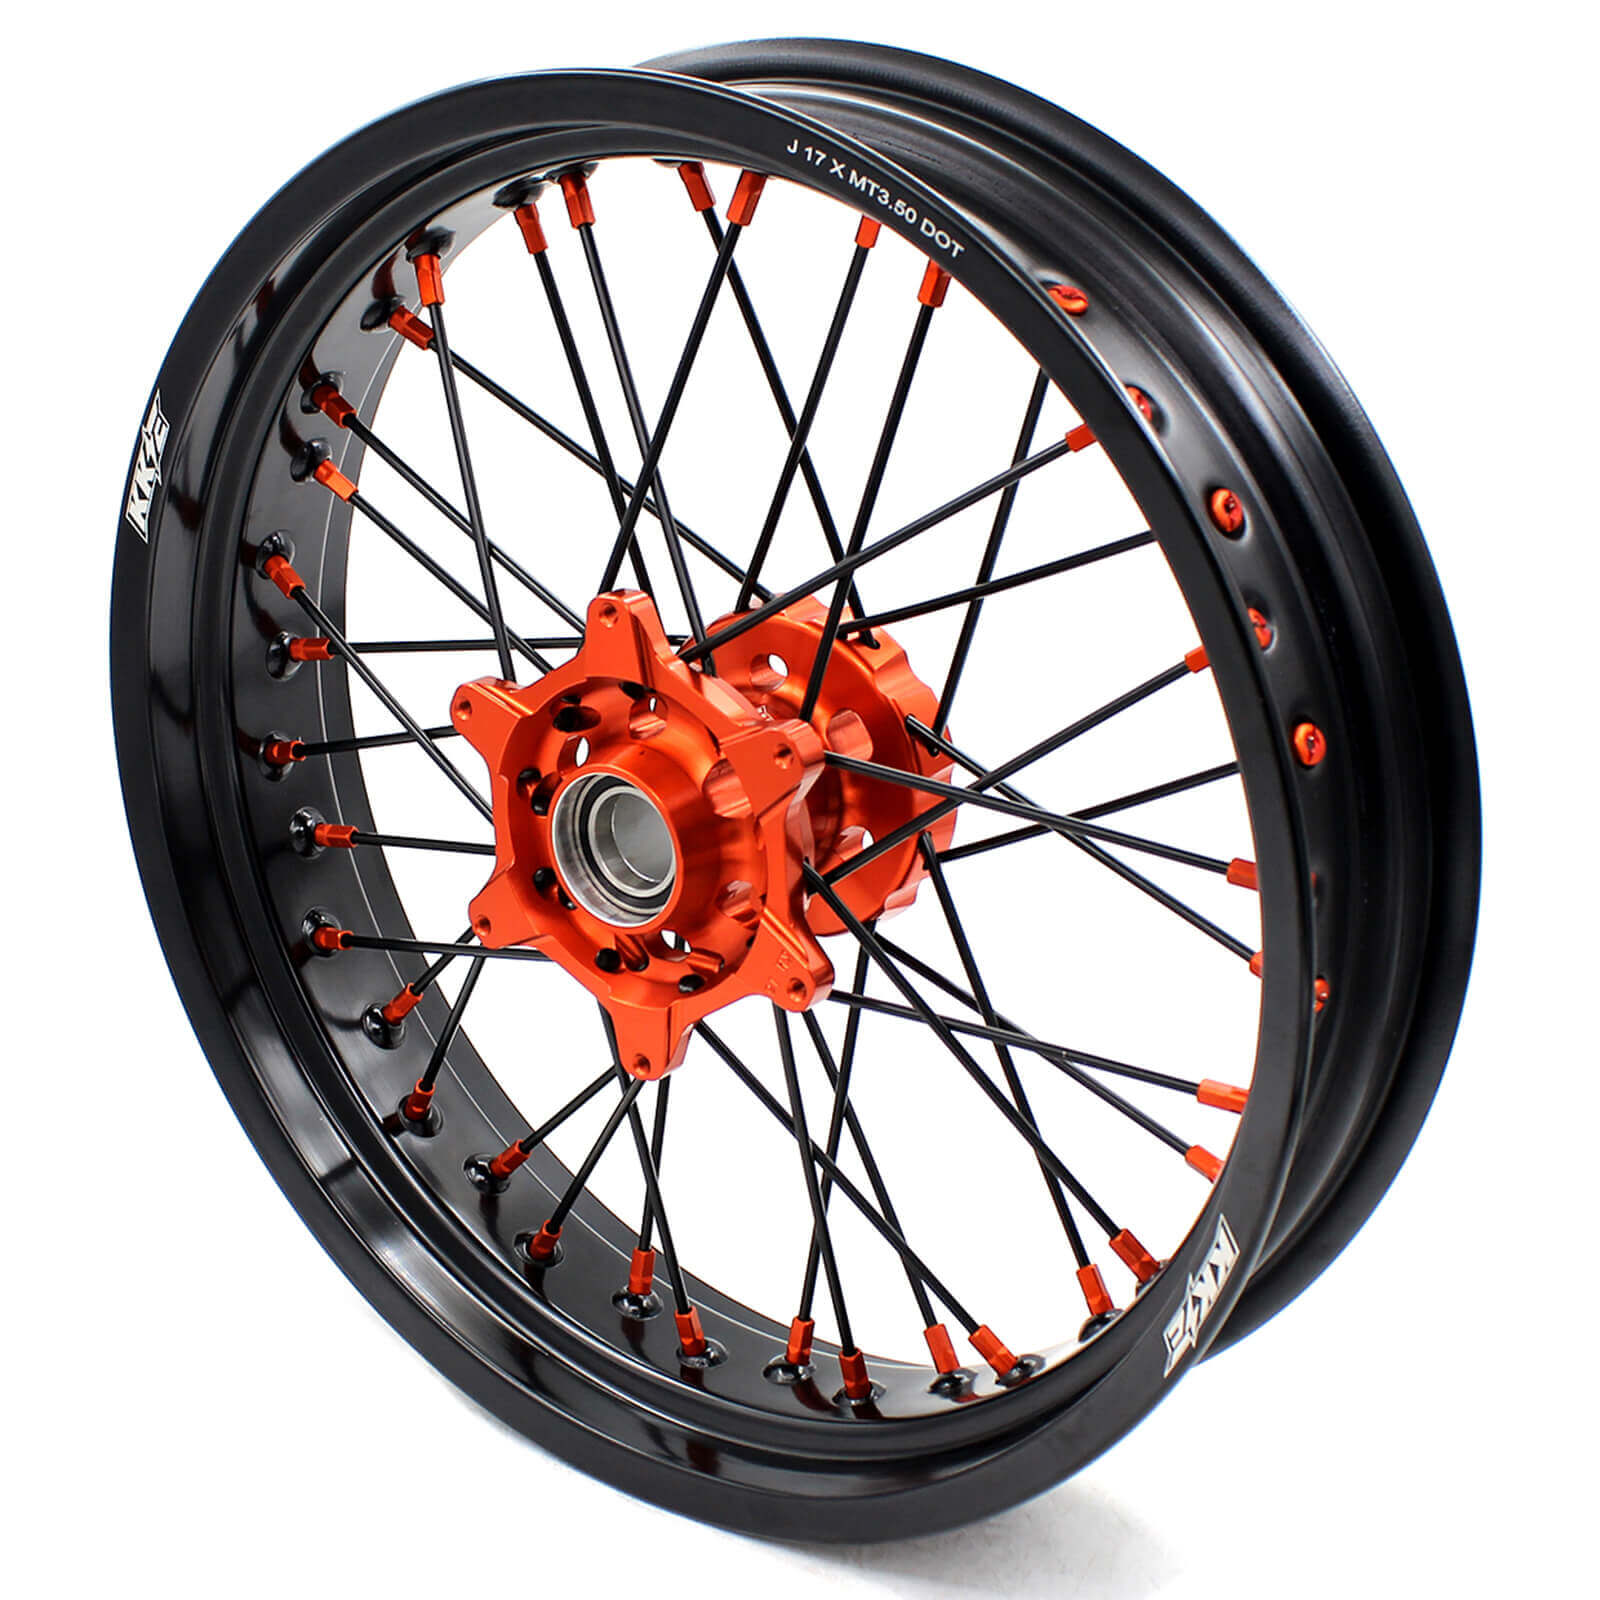 KKE 3.5/4.25 CNC SUPERMOTO WHEELS SET FOR KTM 125-530 2003-2019 ORANGE NIPPLE BLACK SPOKE - KKE Racing